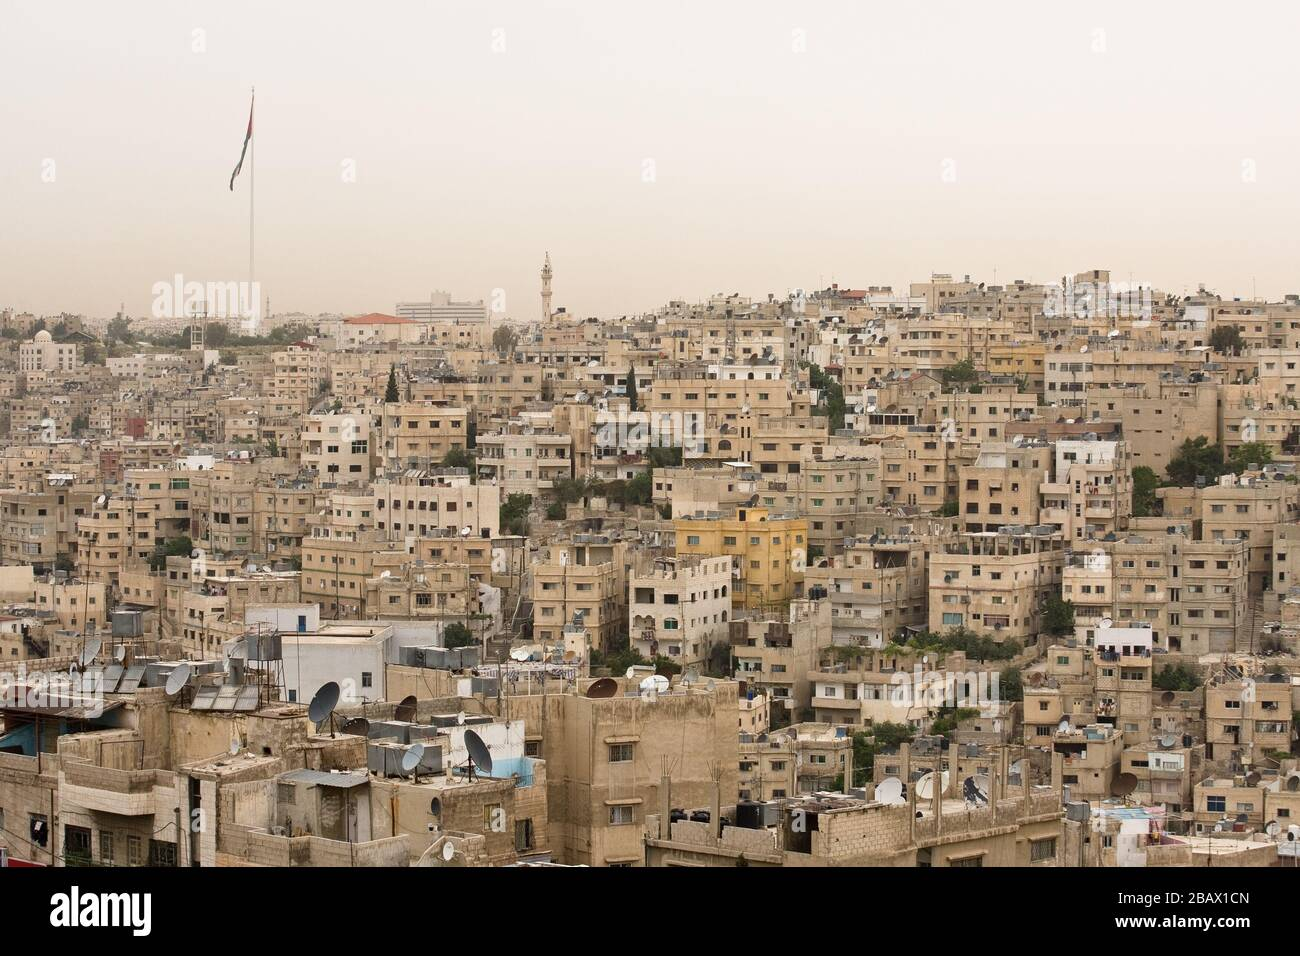 The old city of Amman, Jordan, with tha Raghadan Flagpole, one of the tallest free-standing flagpoles in the world, in the background. Stock Photo